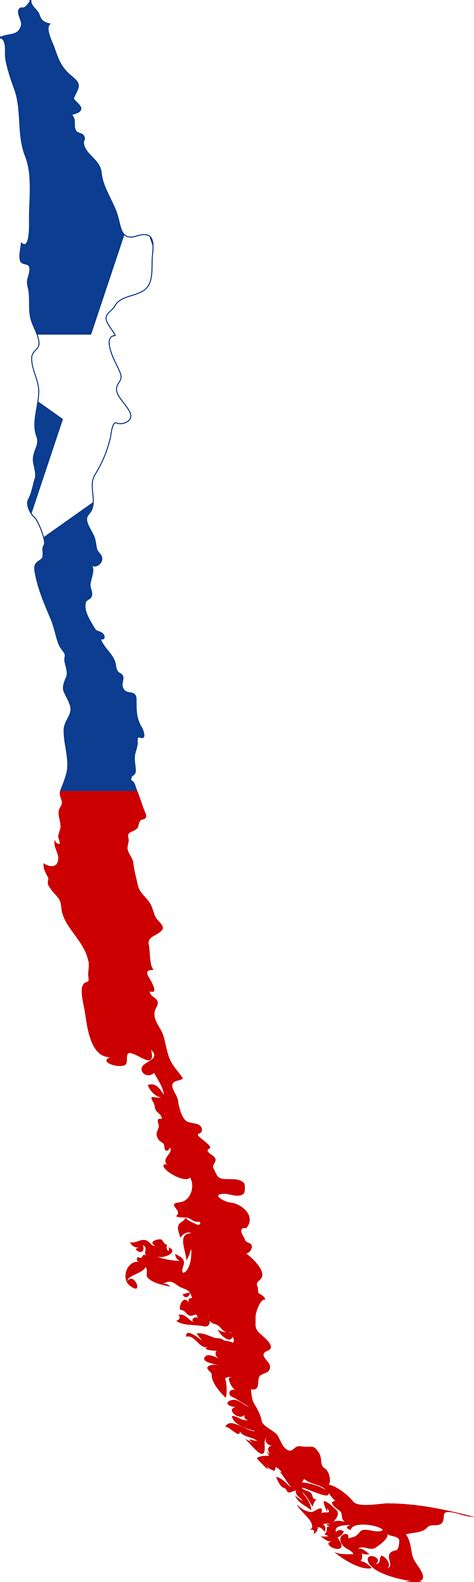 chile looking to gas to meet energy demand energy minister says latin america caribbean program